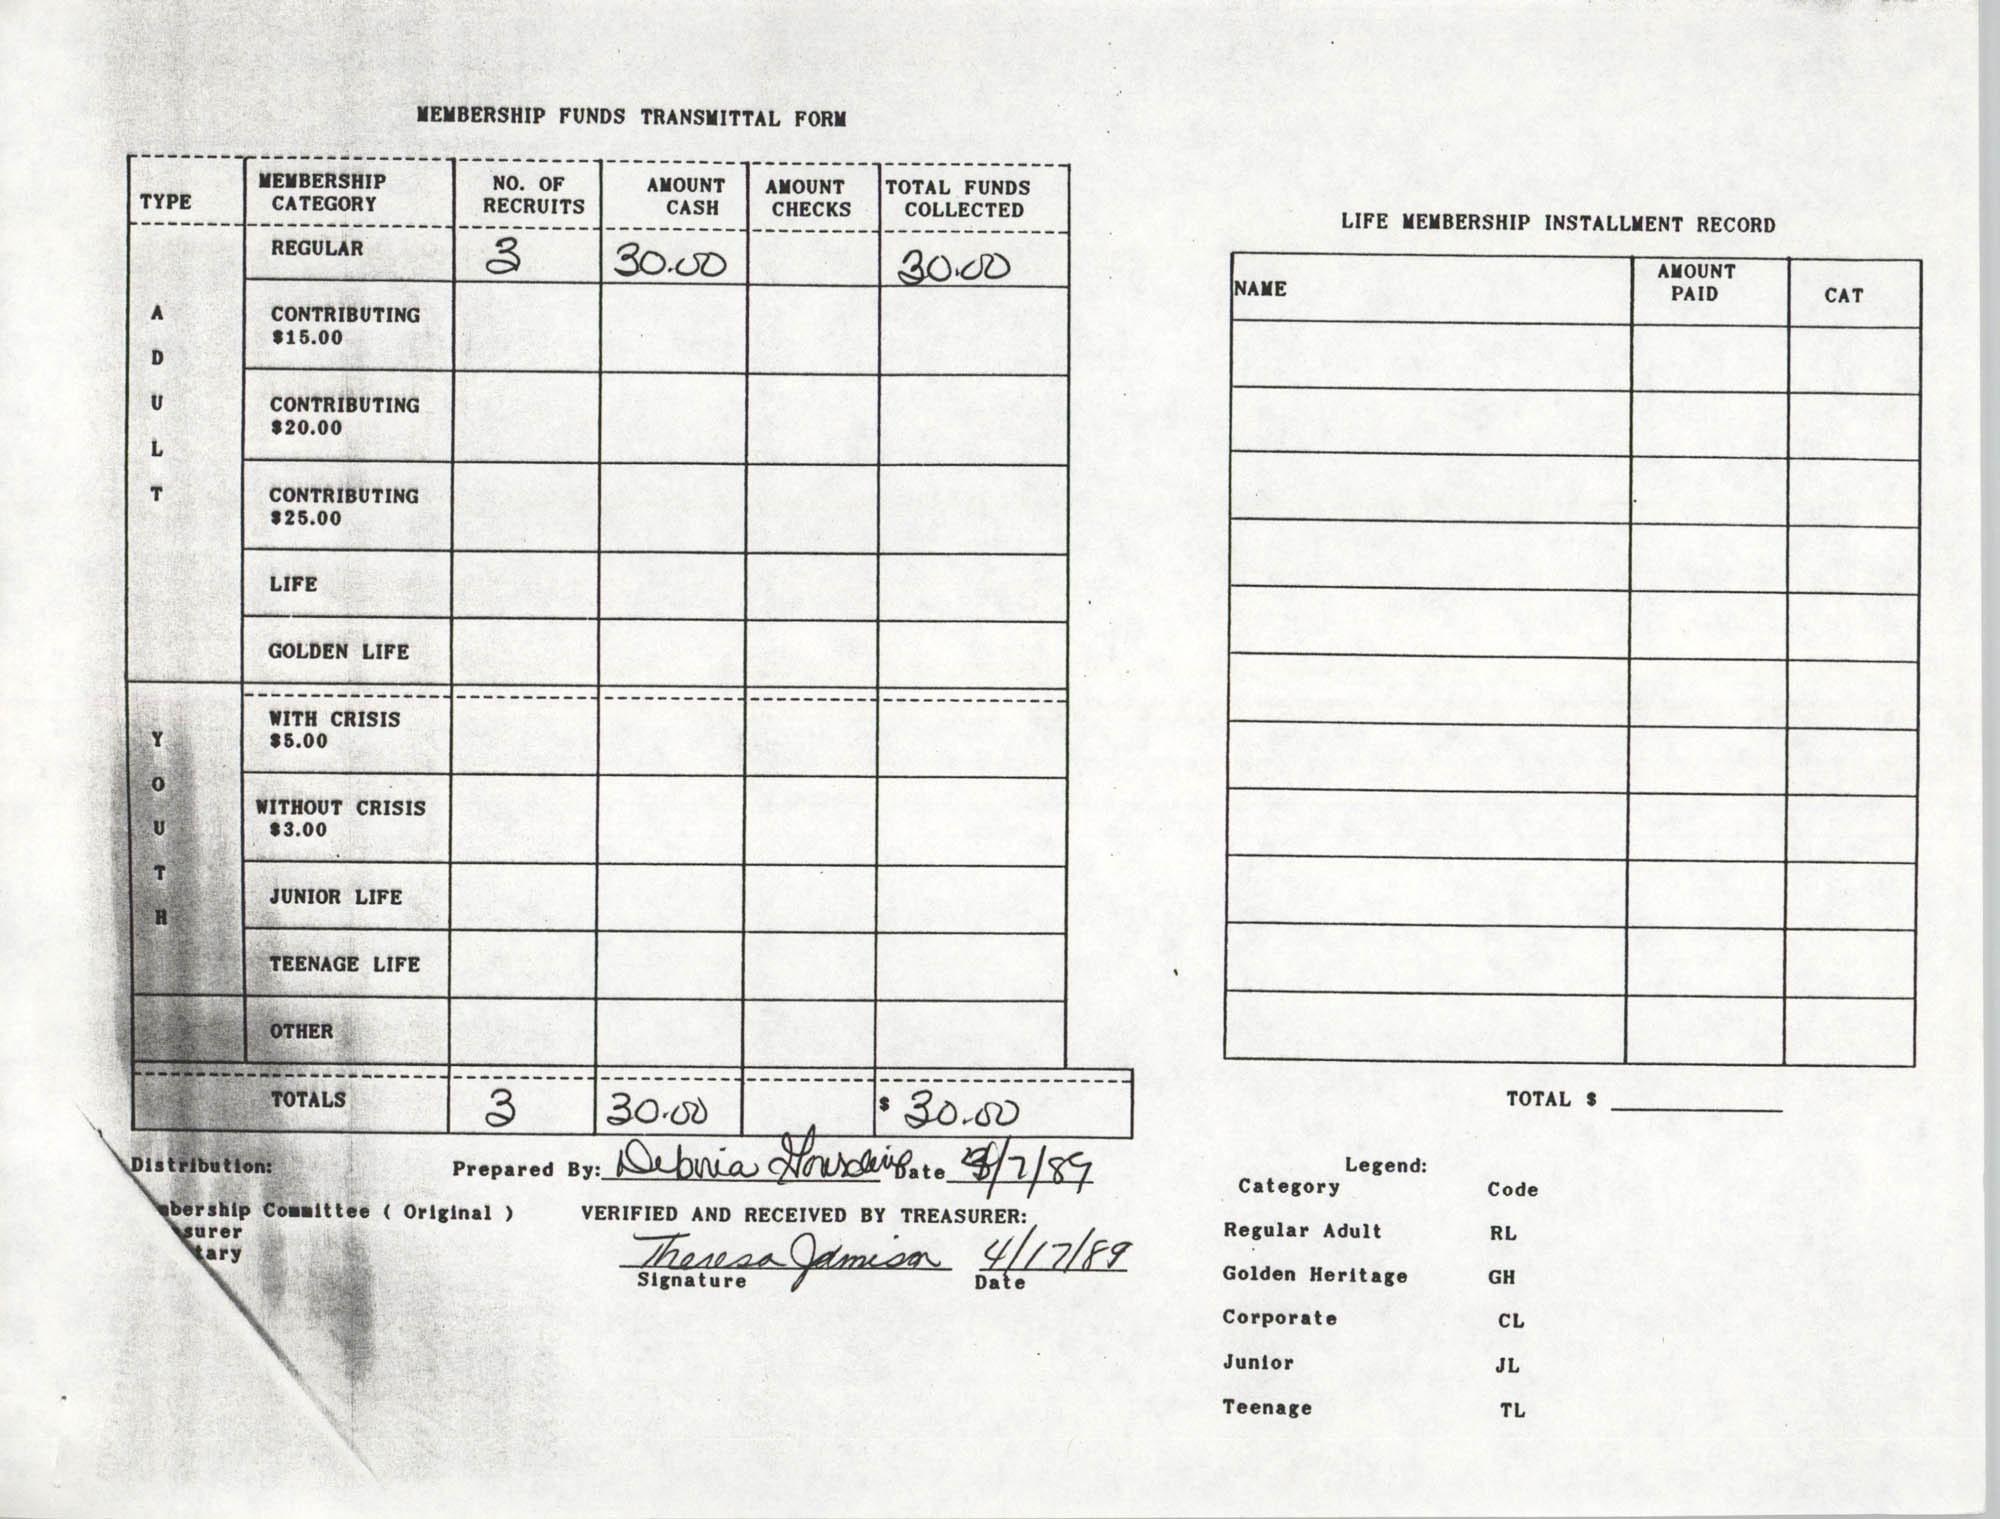 Charleston Branch of the NAACP Funds Transmittal Forms, April 1989, Page 1